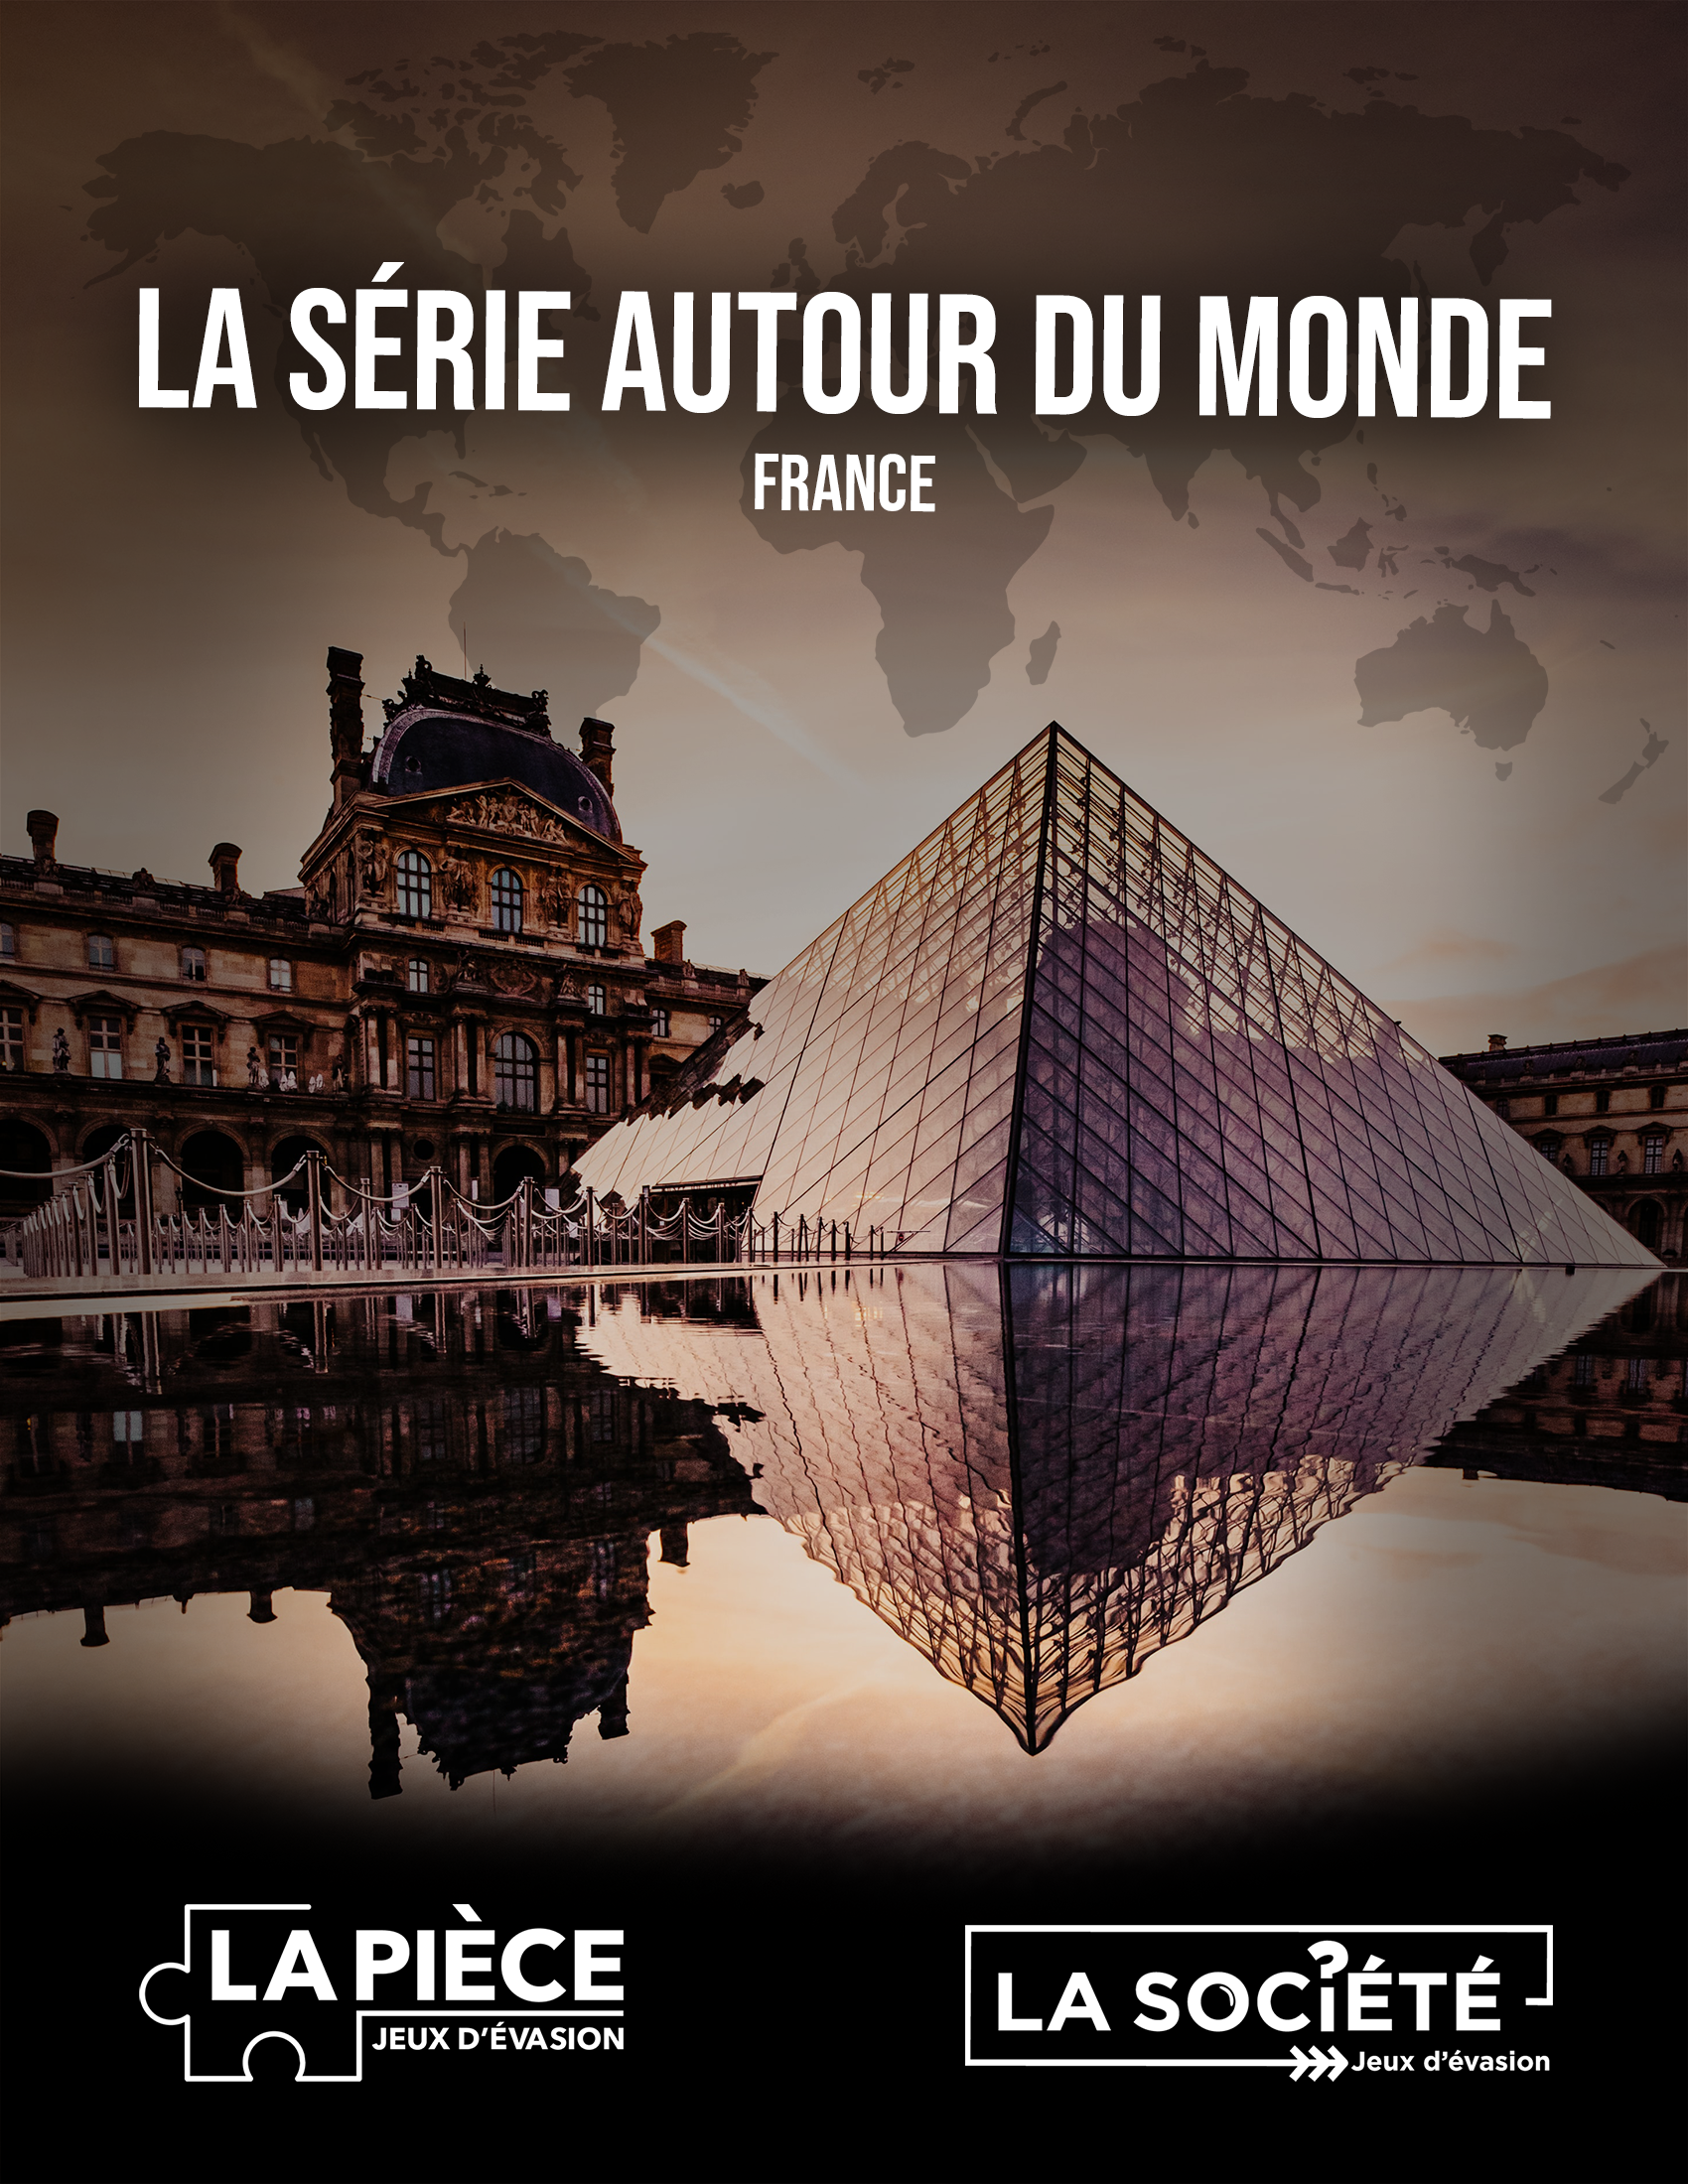 Image de couverture du jeu La France - Photo du Louvre